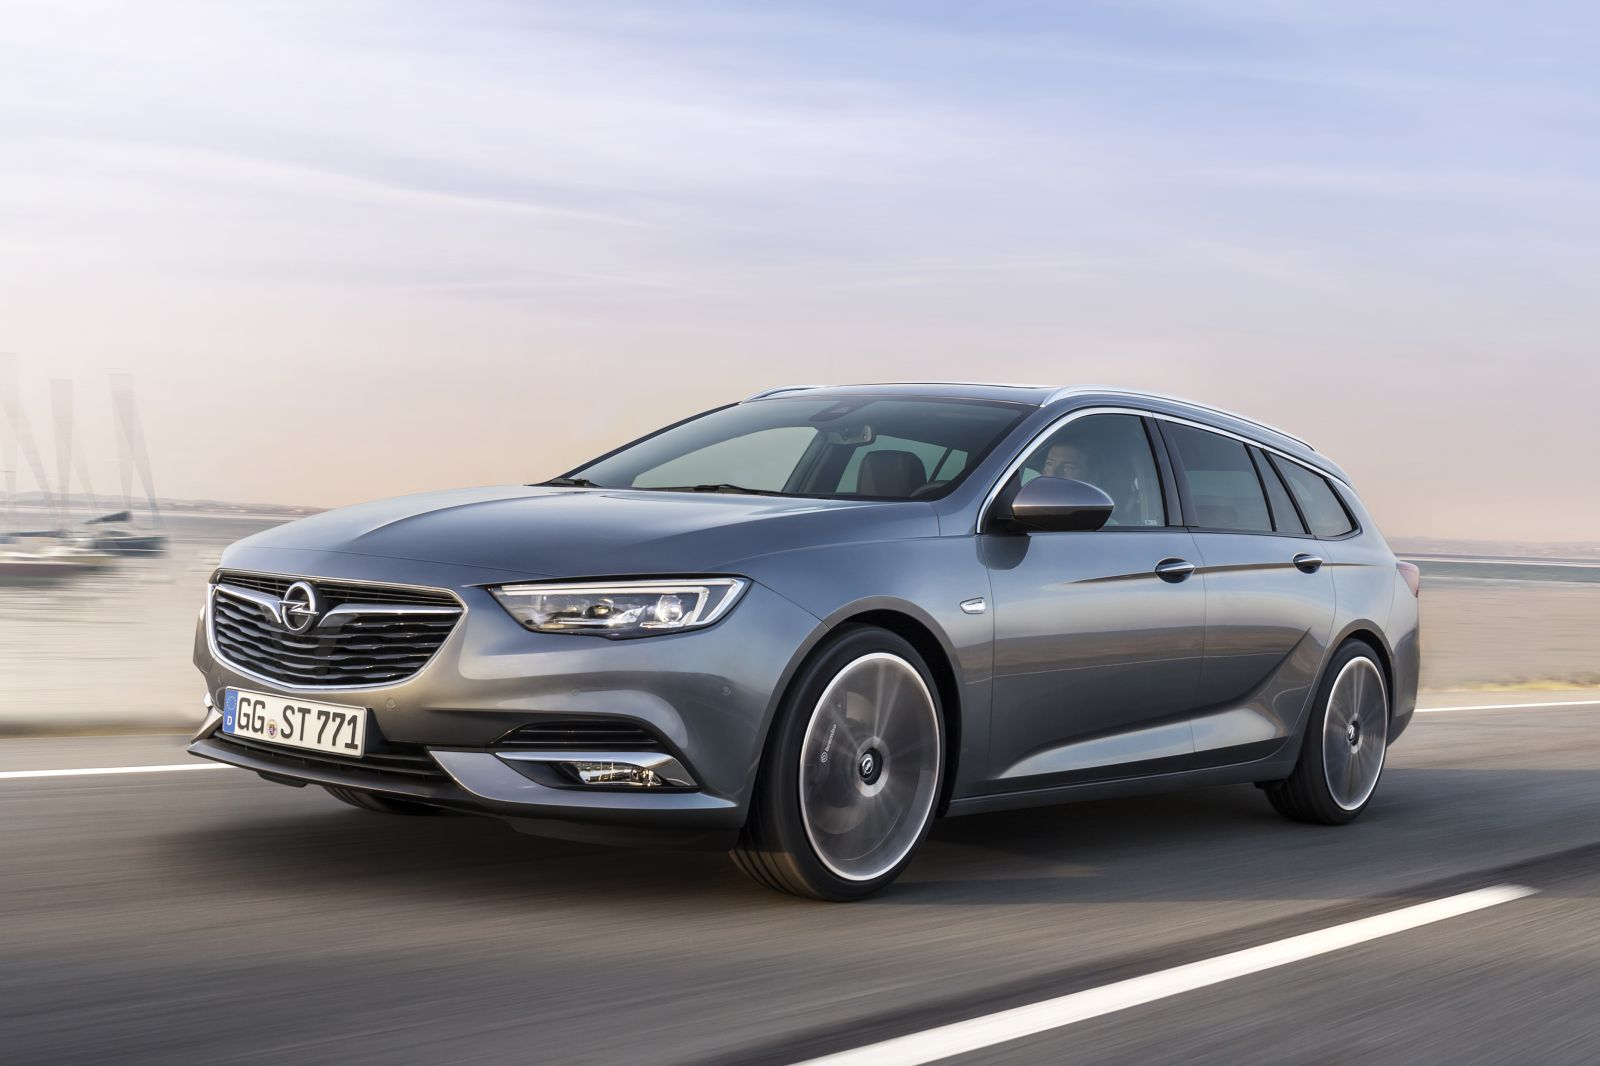 Opel-Insignia-Sports-Tourer-304054_1